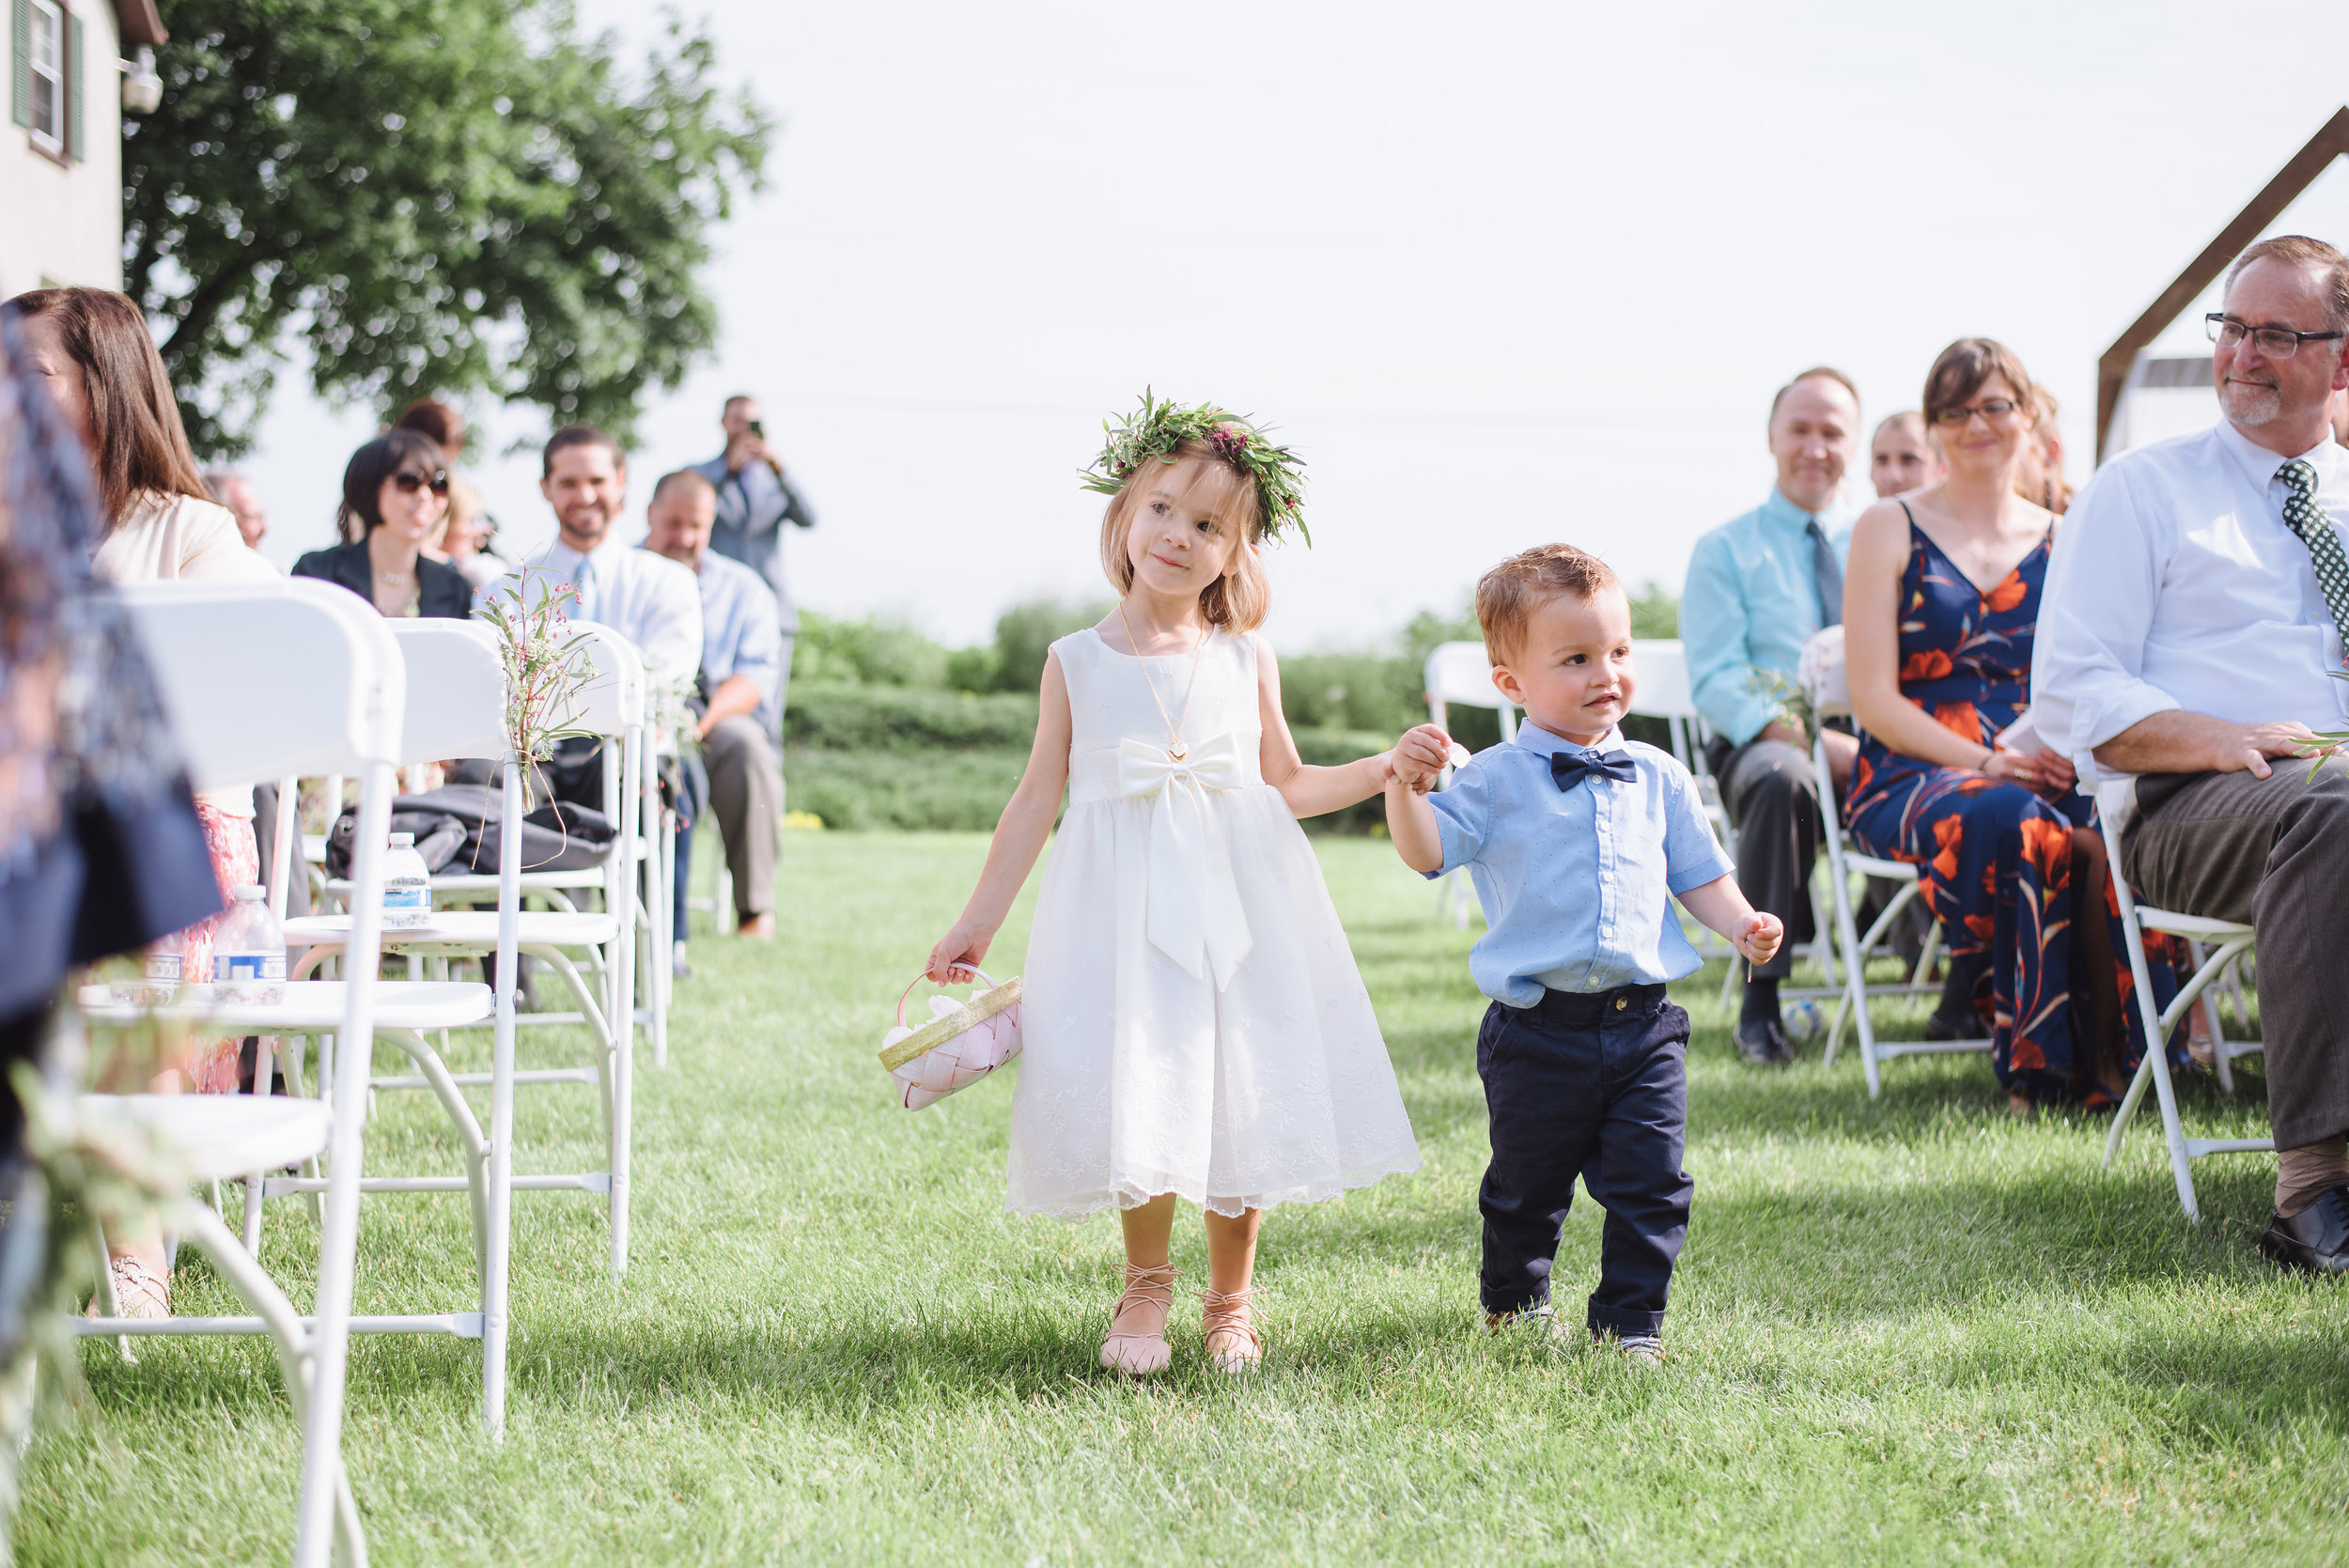 A flower crown is the perfect way to adorn your sweet flower girl with little blooms and greens